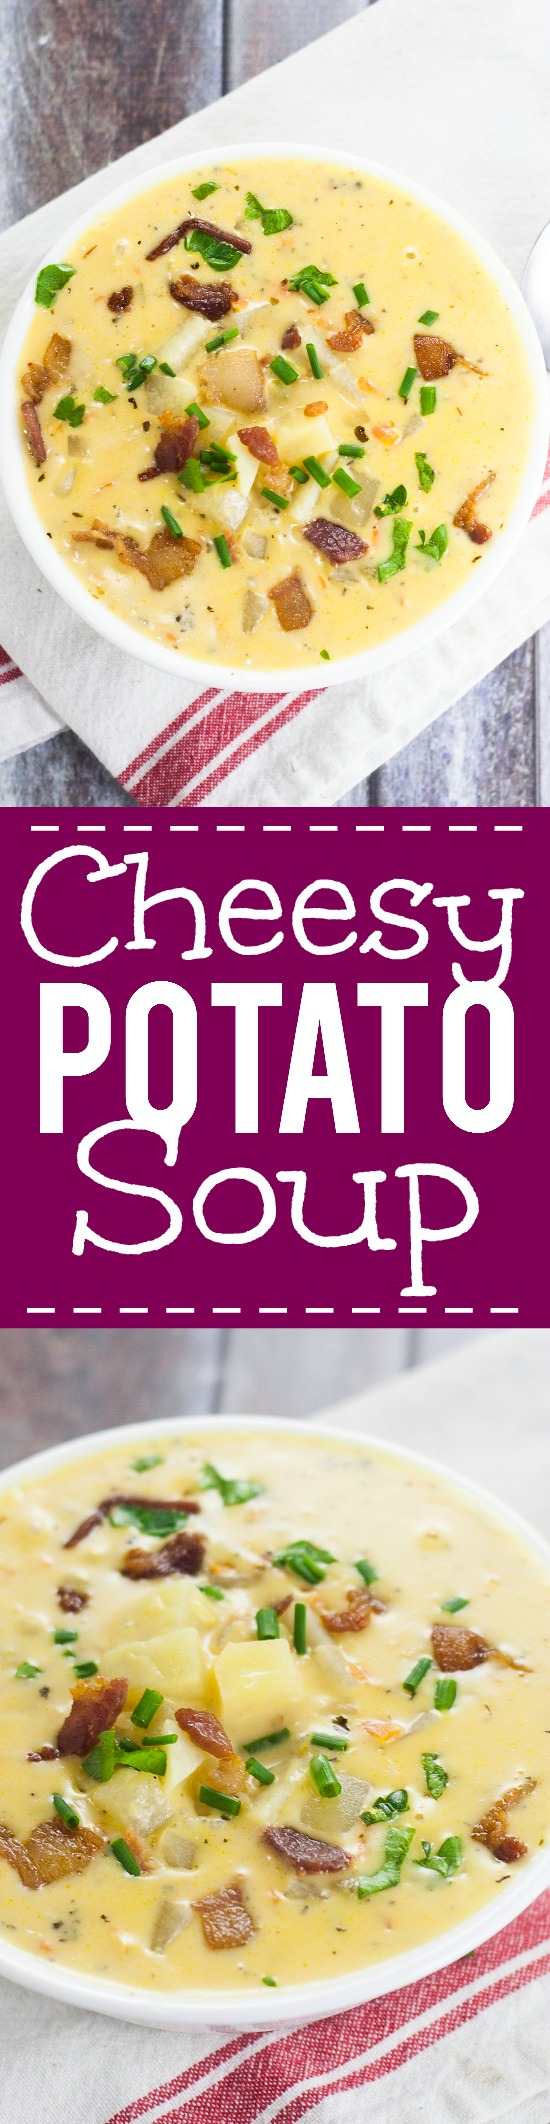 Cheesy Potato Soup Recipe -Warm and creamy Cheesy Potato Soup recipe is a deliciously perfect classic comfort food recipe to keep you warm and happy all winter long. Yummmm! One of my all time favorite delicious soup recipes. Ever.